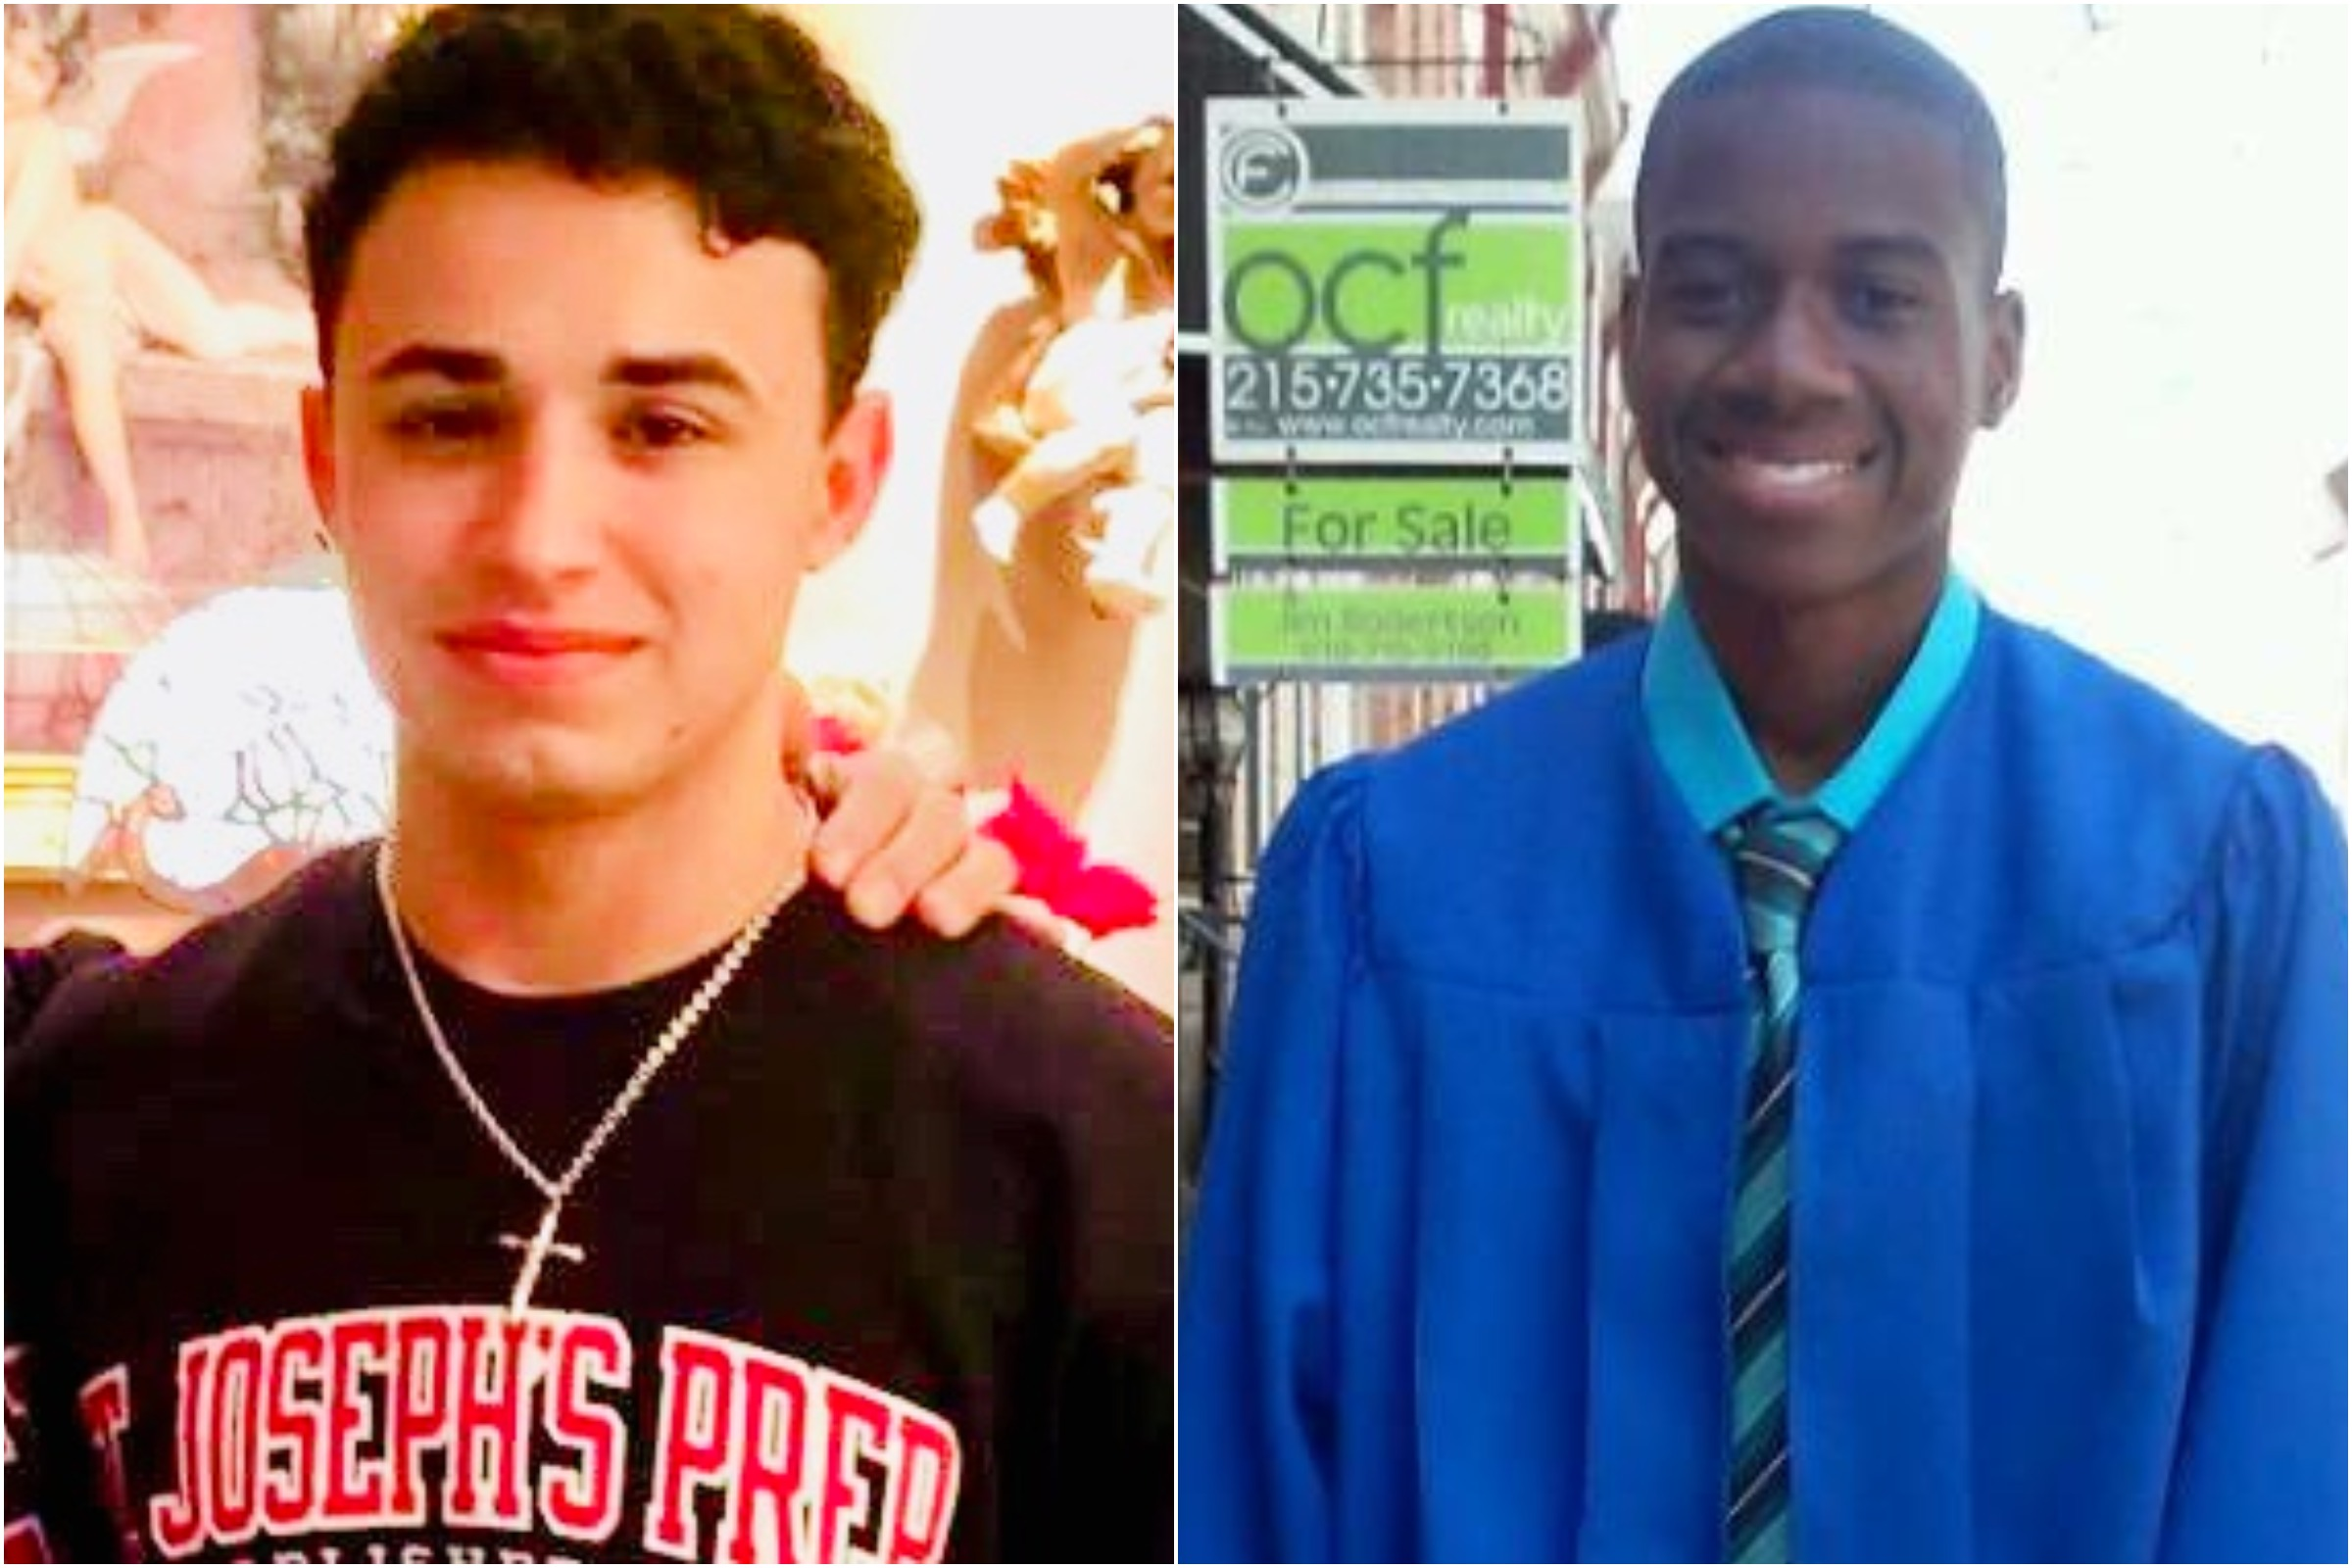 Salvatore DiNubile, left, and Caleer Miller, right. The two teens were shot dead in South Philadelphia in October 2017.